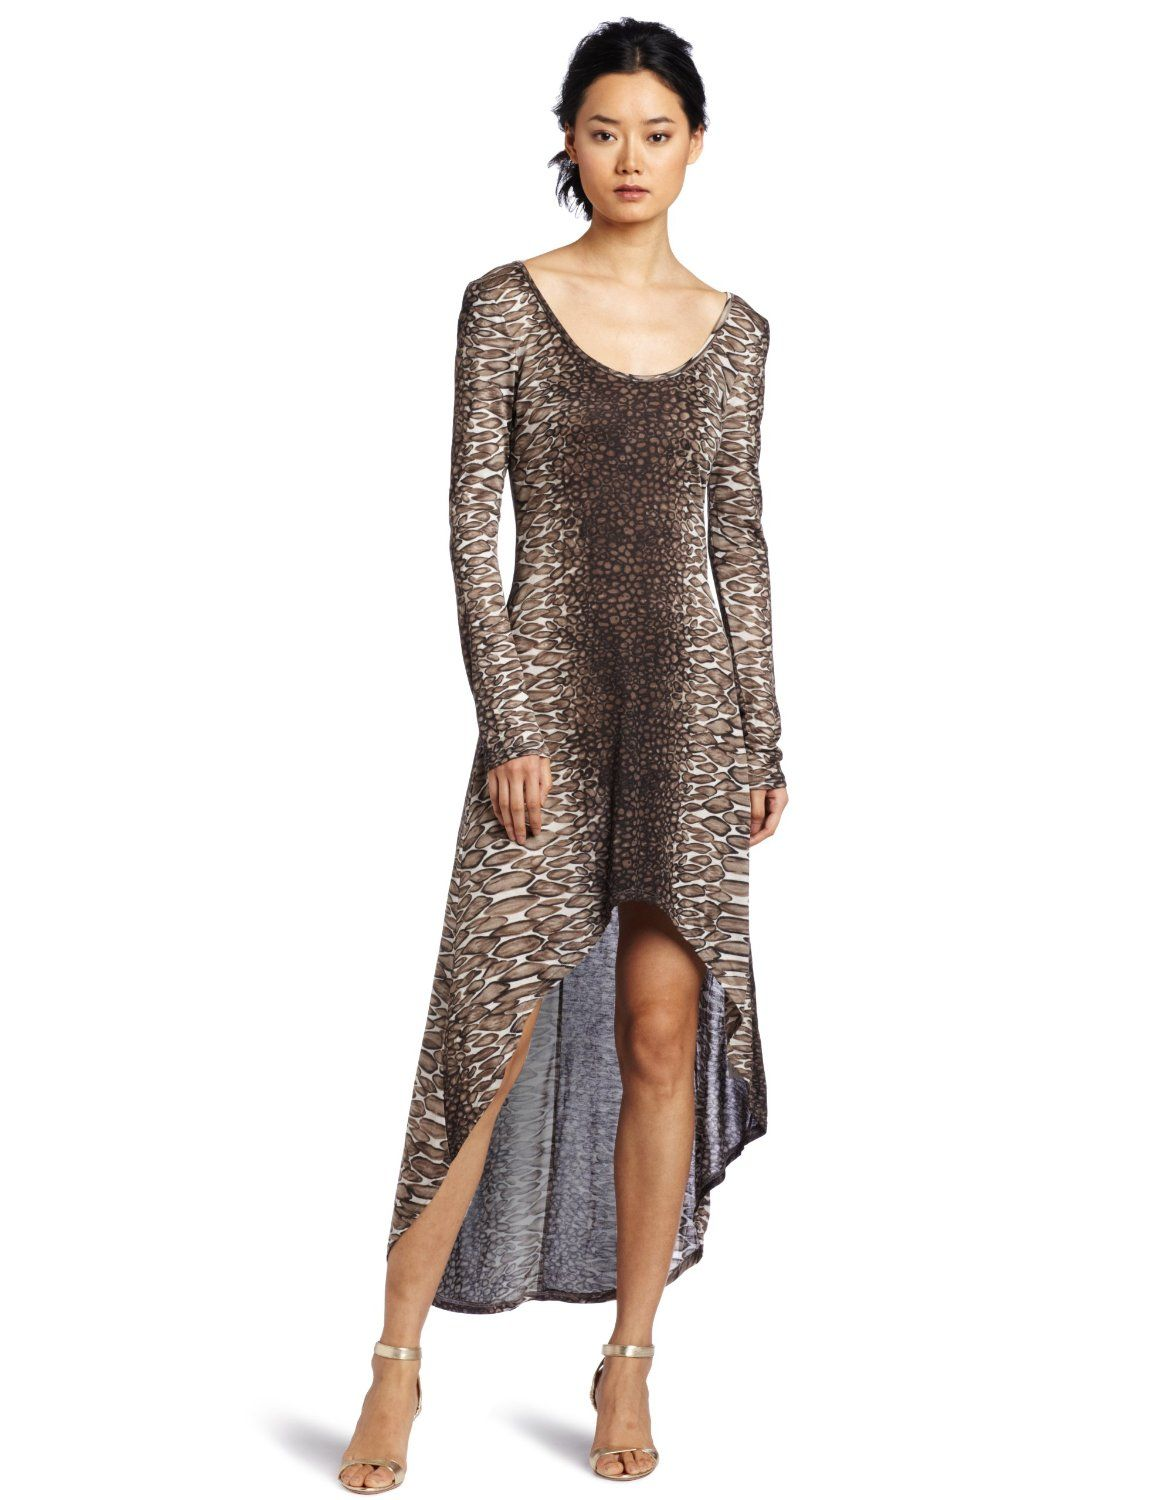 Romeo juliet couture womenus high low animal dress must haves